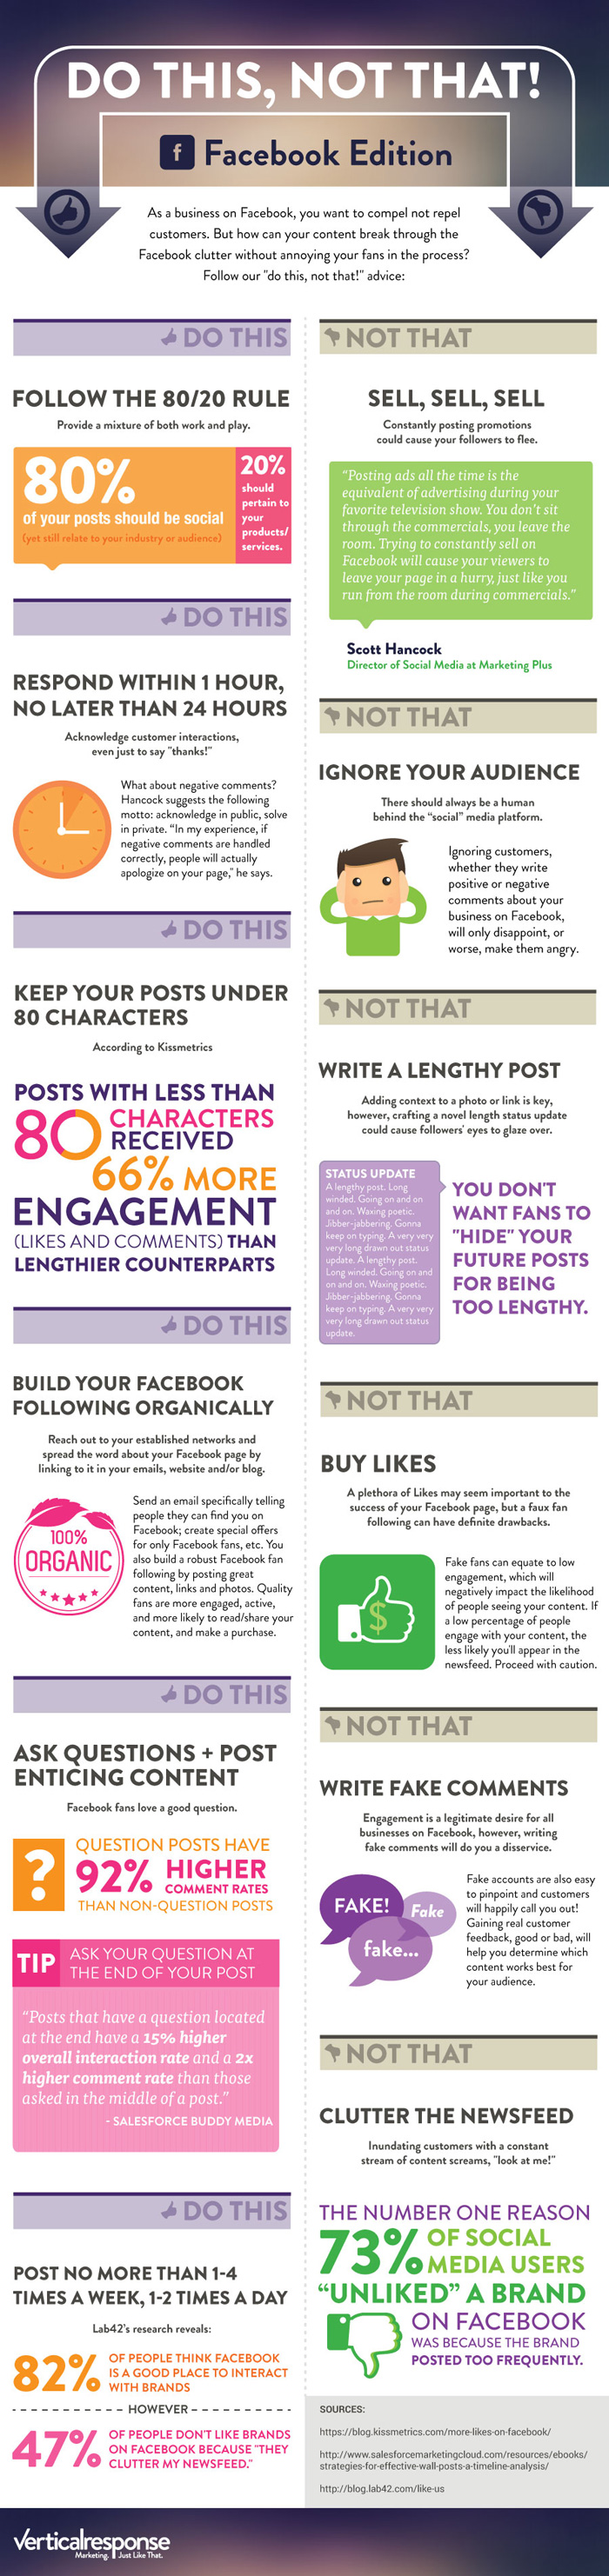 Facebook for Business: Do This, Not That! Infographic